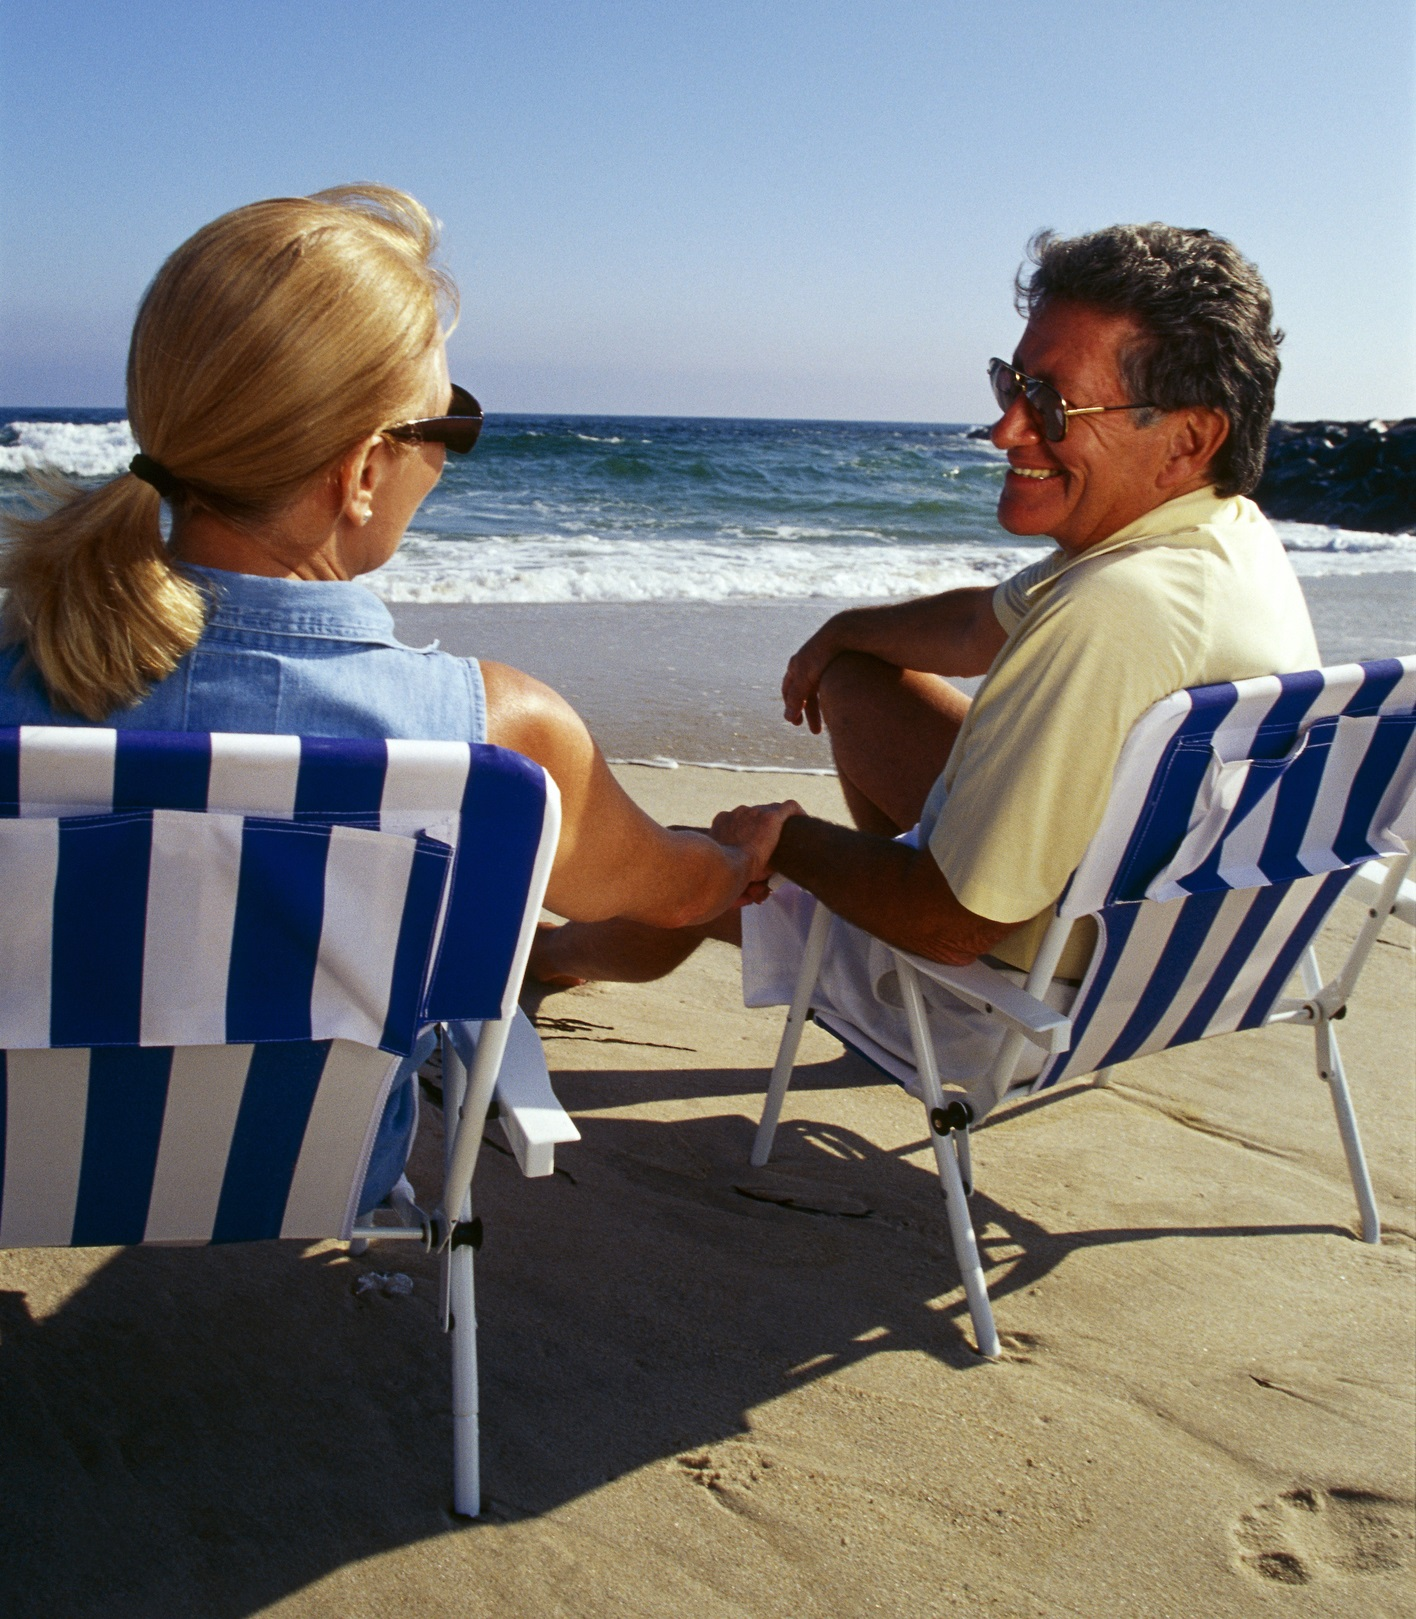 Blonde haired woman and tan older man holding hands sitting on beach chairs